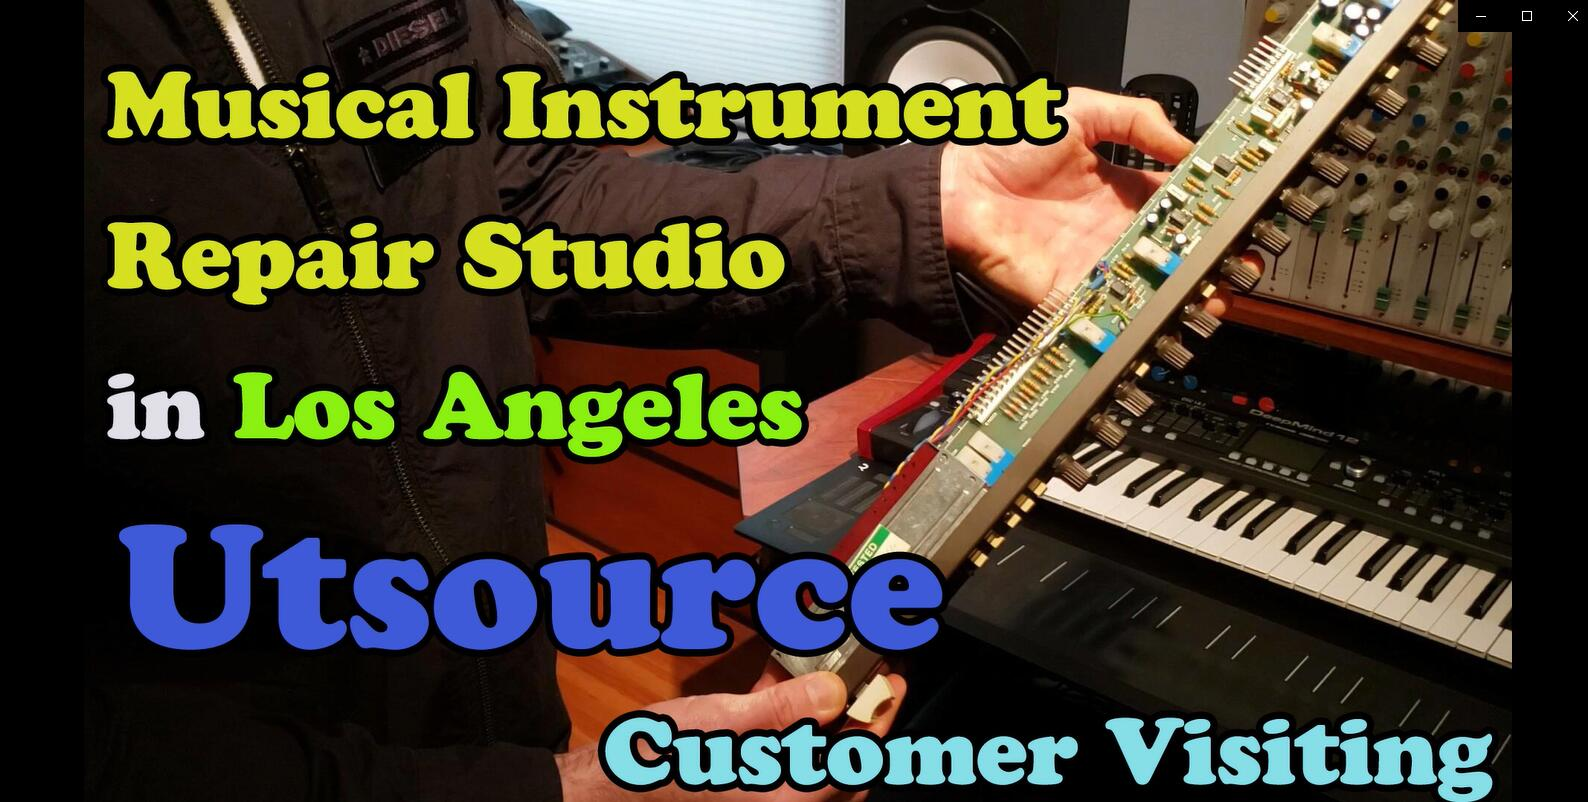 Musical Instrument Repair Studio in Los Angeles, Utsource Customer Visiting